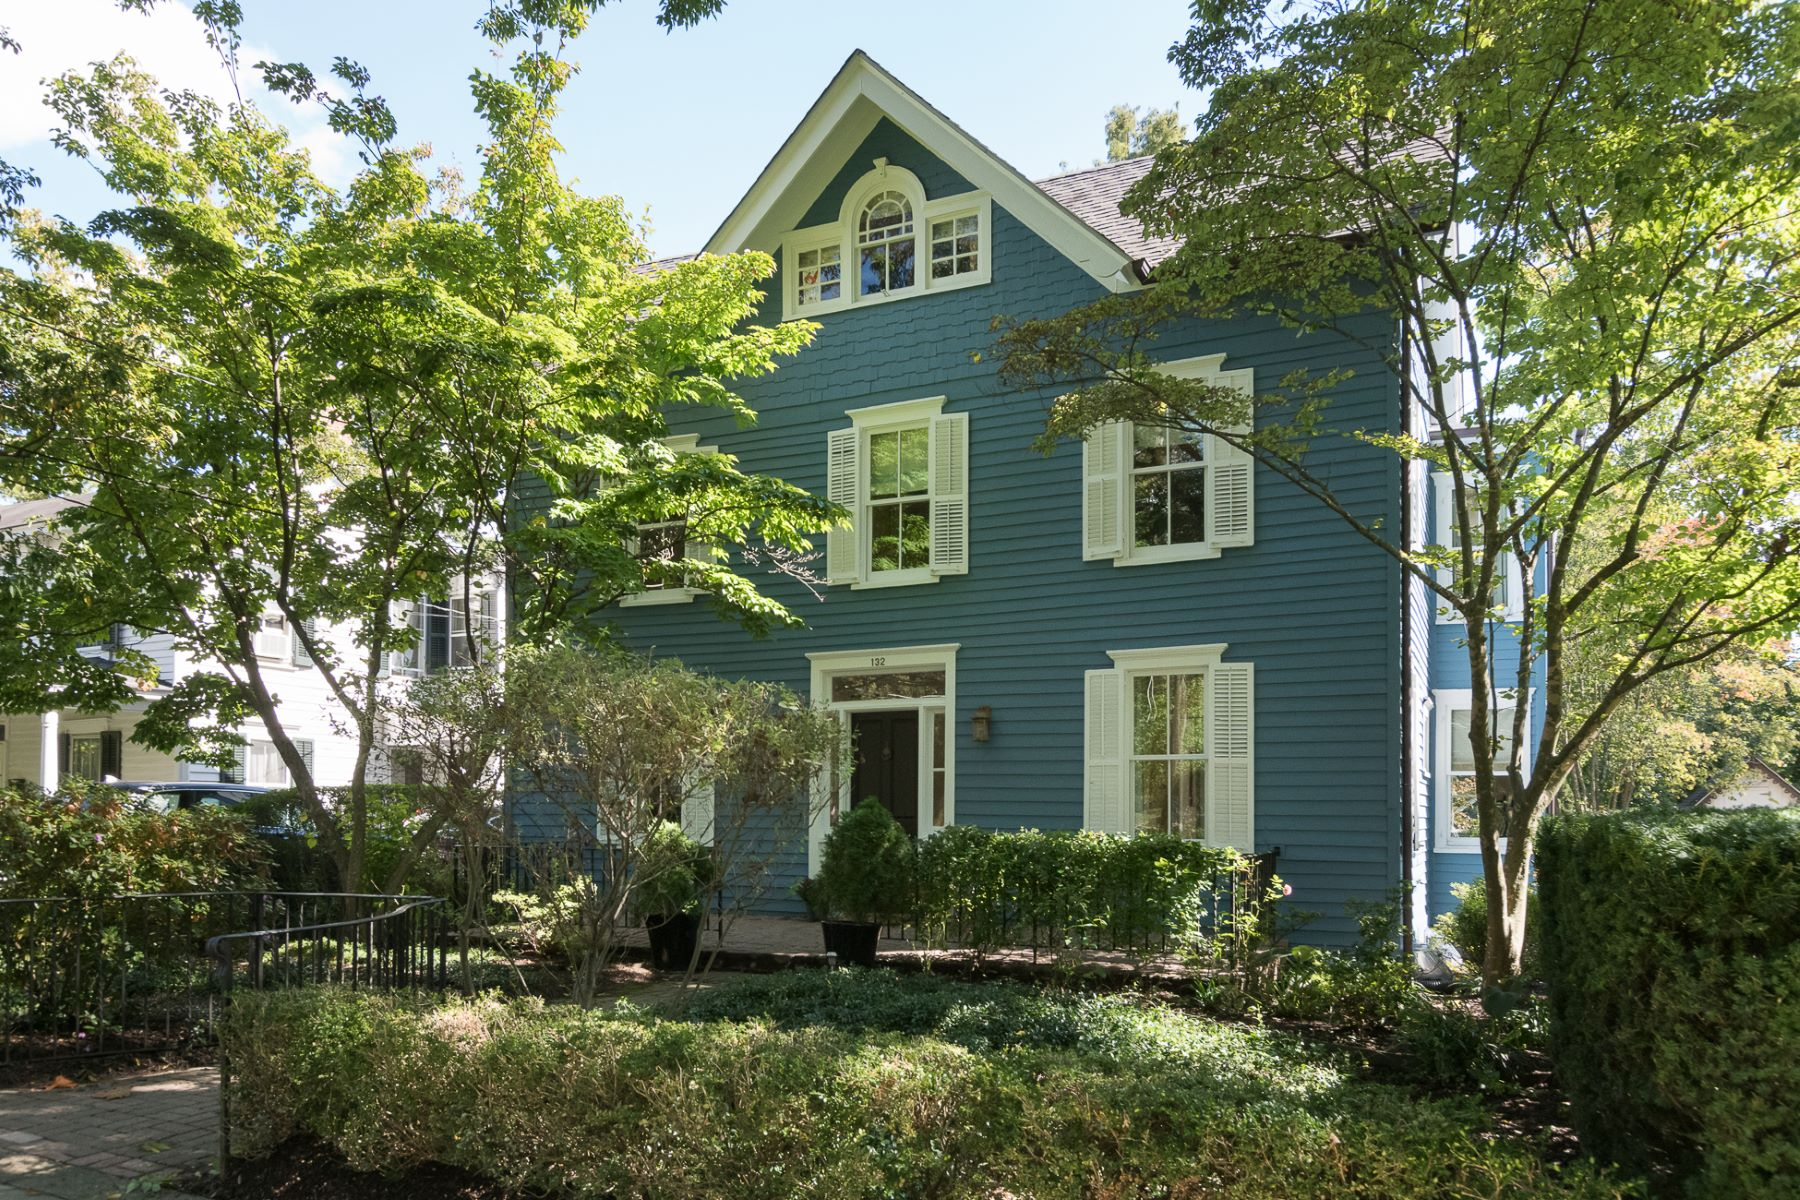 Single Family Homes for Sale at 19th Century Charm, 21st Century Features 132 Mercer Street, Princeton, New Jersey 08540 United States